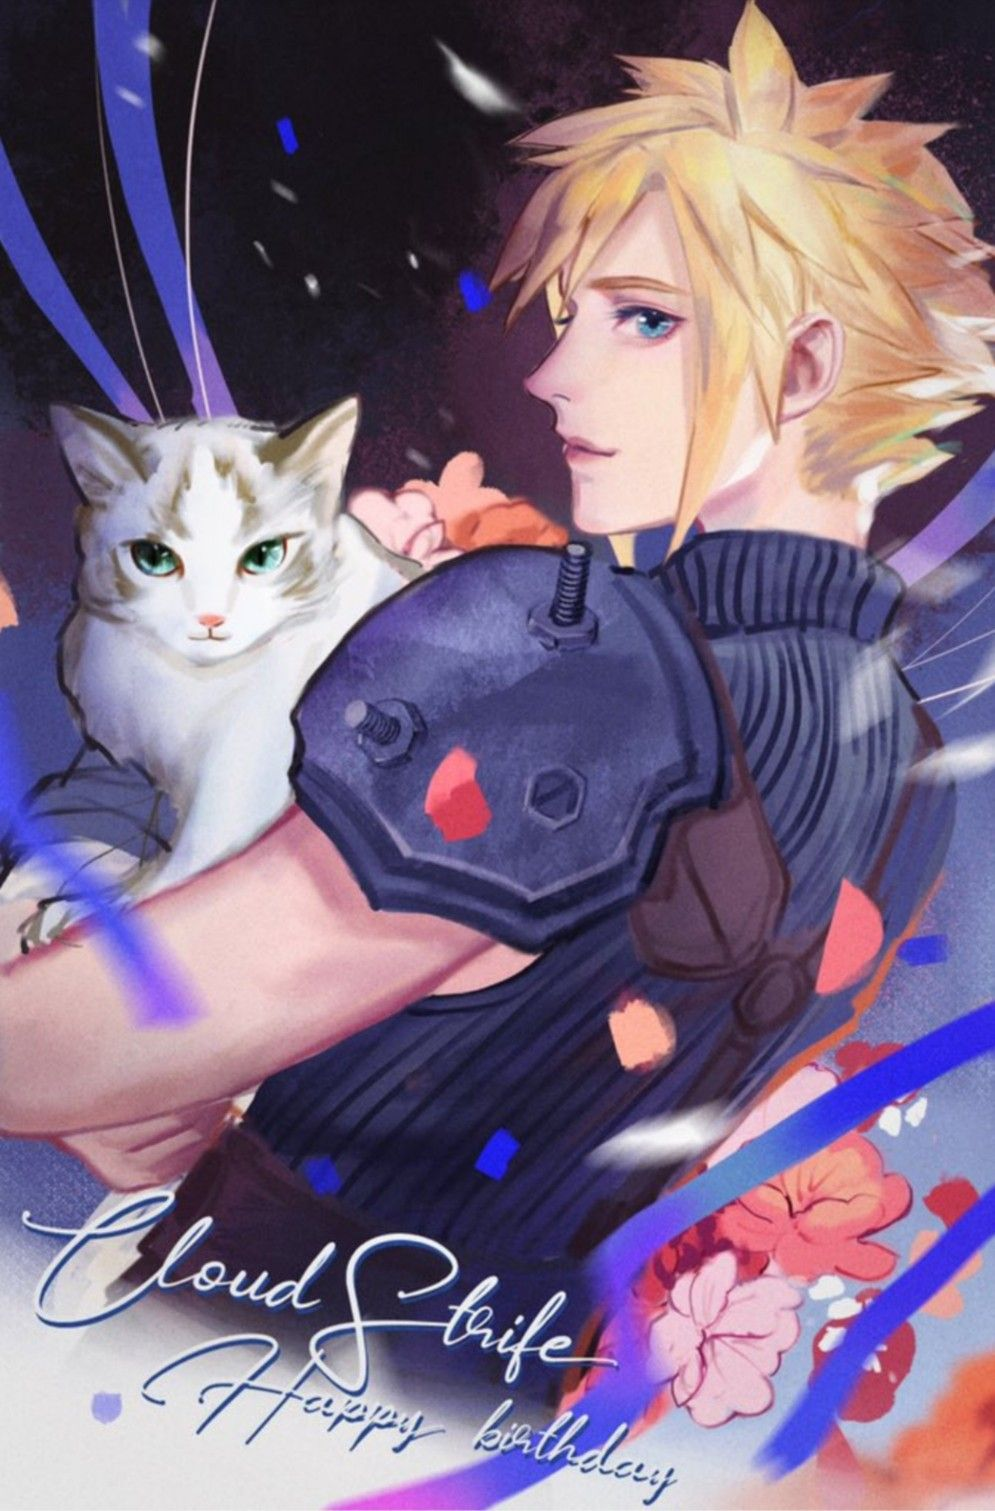 Pin By D Nyka On The Babe With The Blue Eyes In 2020 Final Fantasy Art Final Fantasy Funny Final Fantasy Cloud